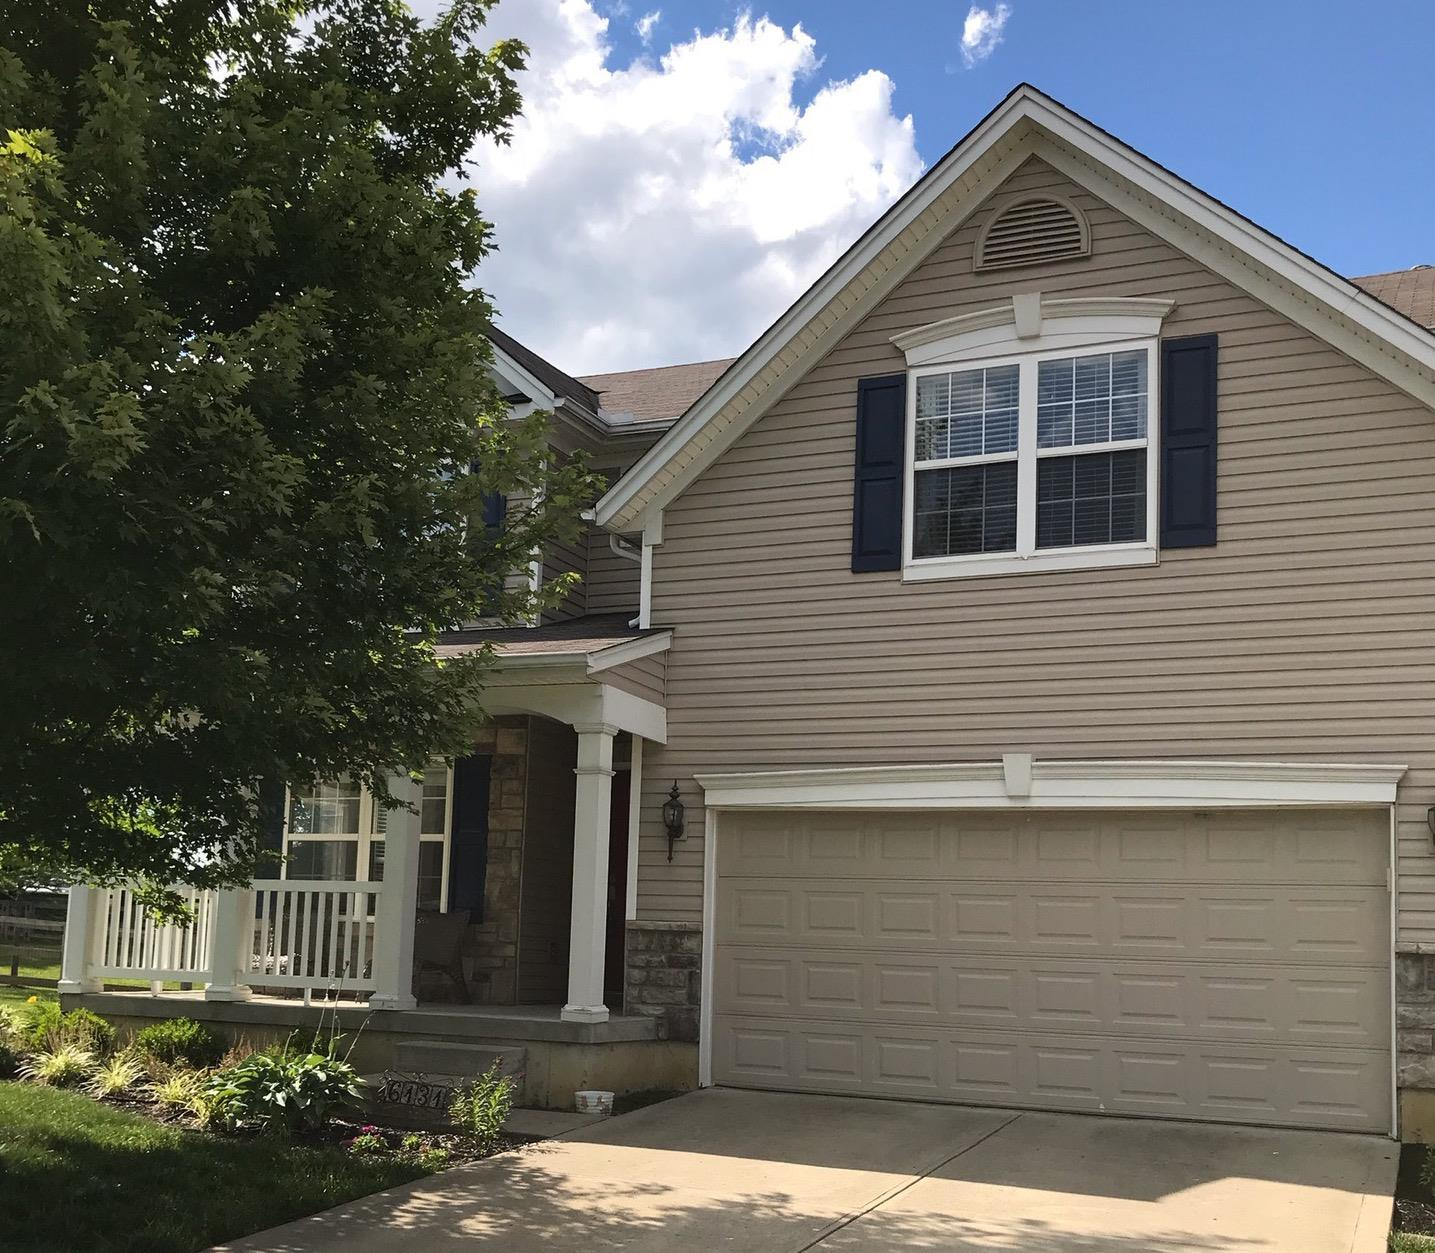 6131 Driftwood Court, Hamilton Twp, OH 45039